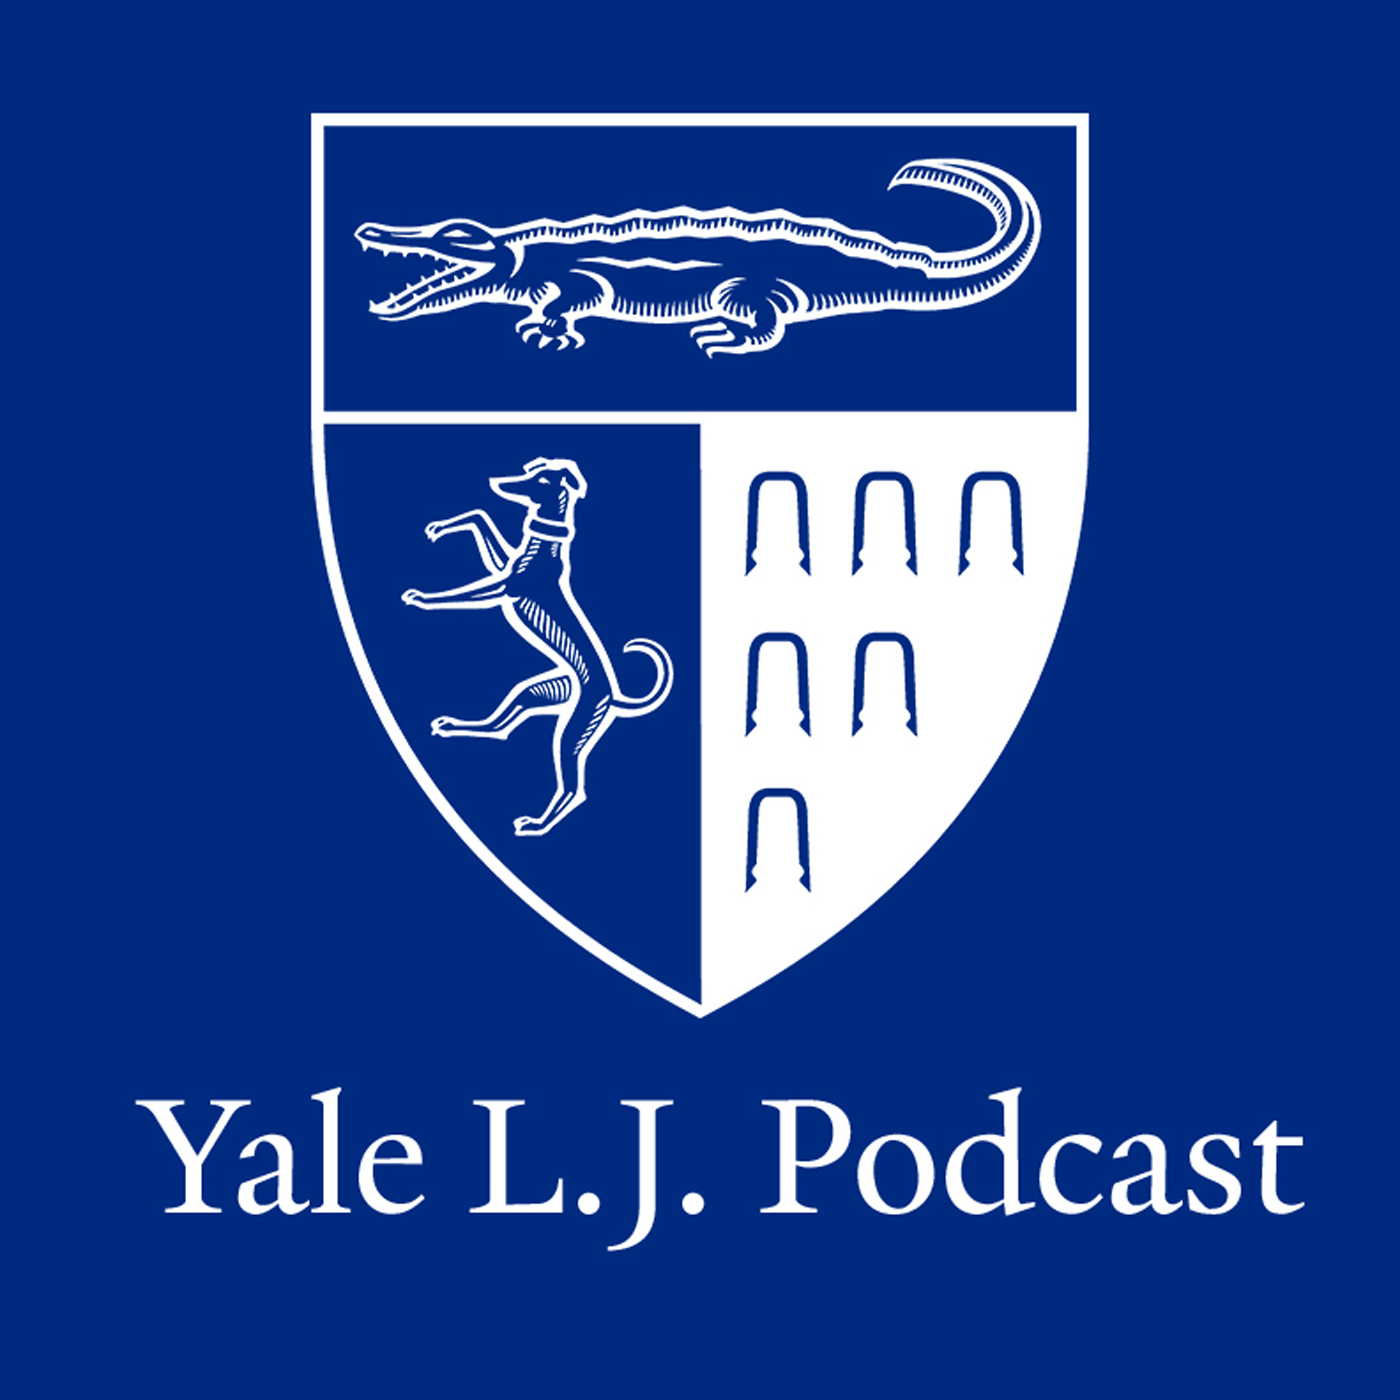 The Yale Law Journal Podcast